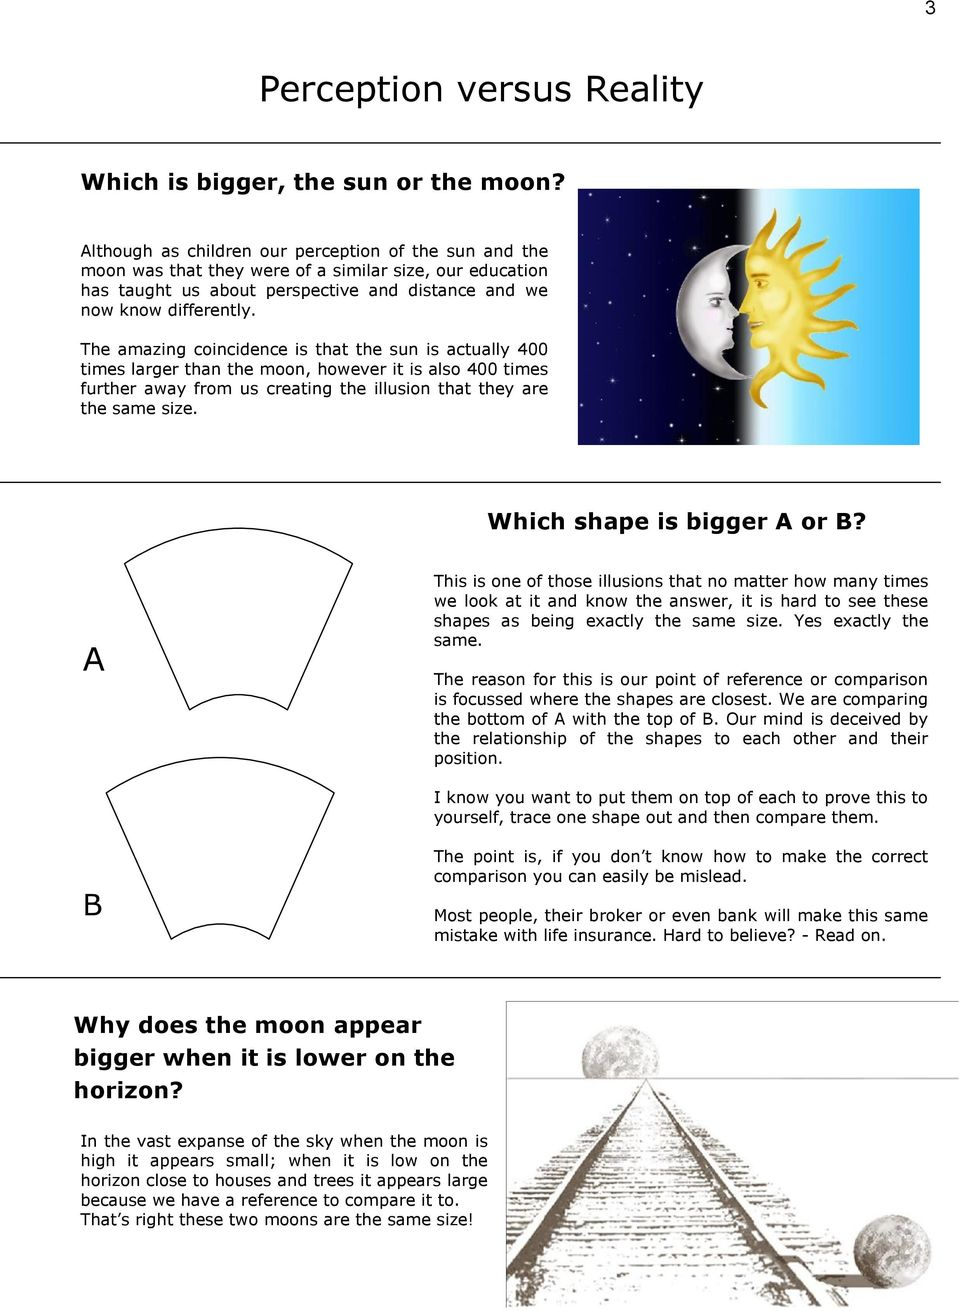 The amazing coincidence is that the sun is actually 400 times larger than the moon, however it is also 400 times further away from us creating the illusion that they are the same size.